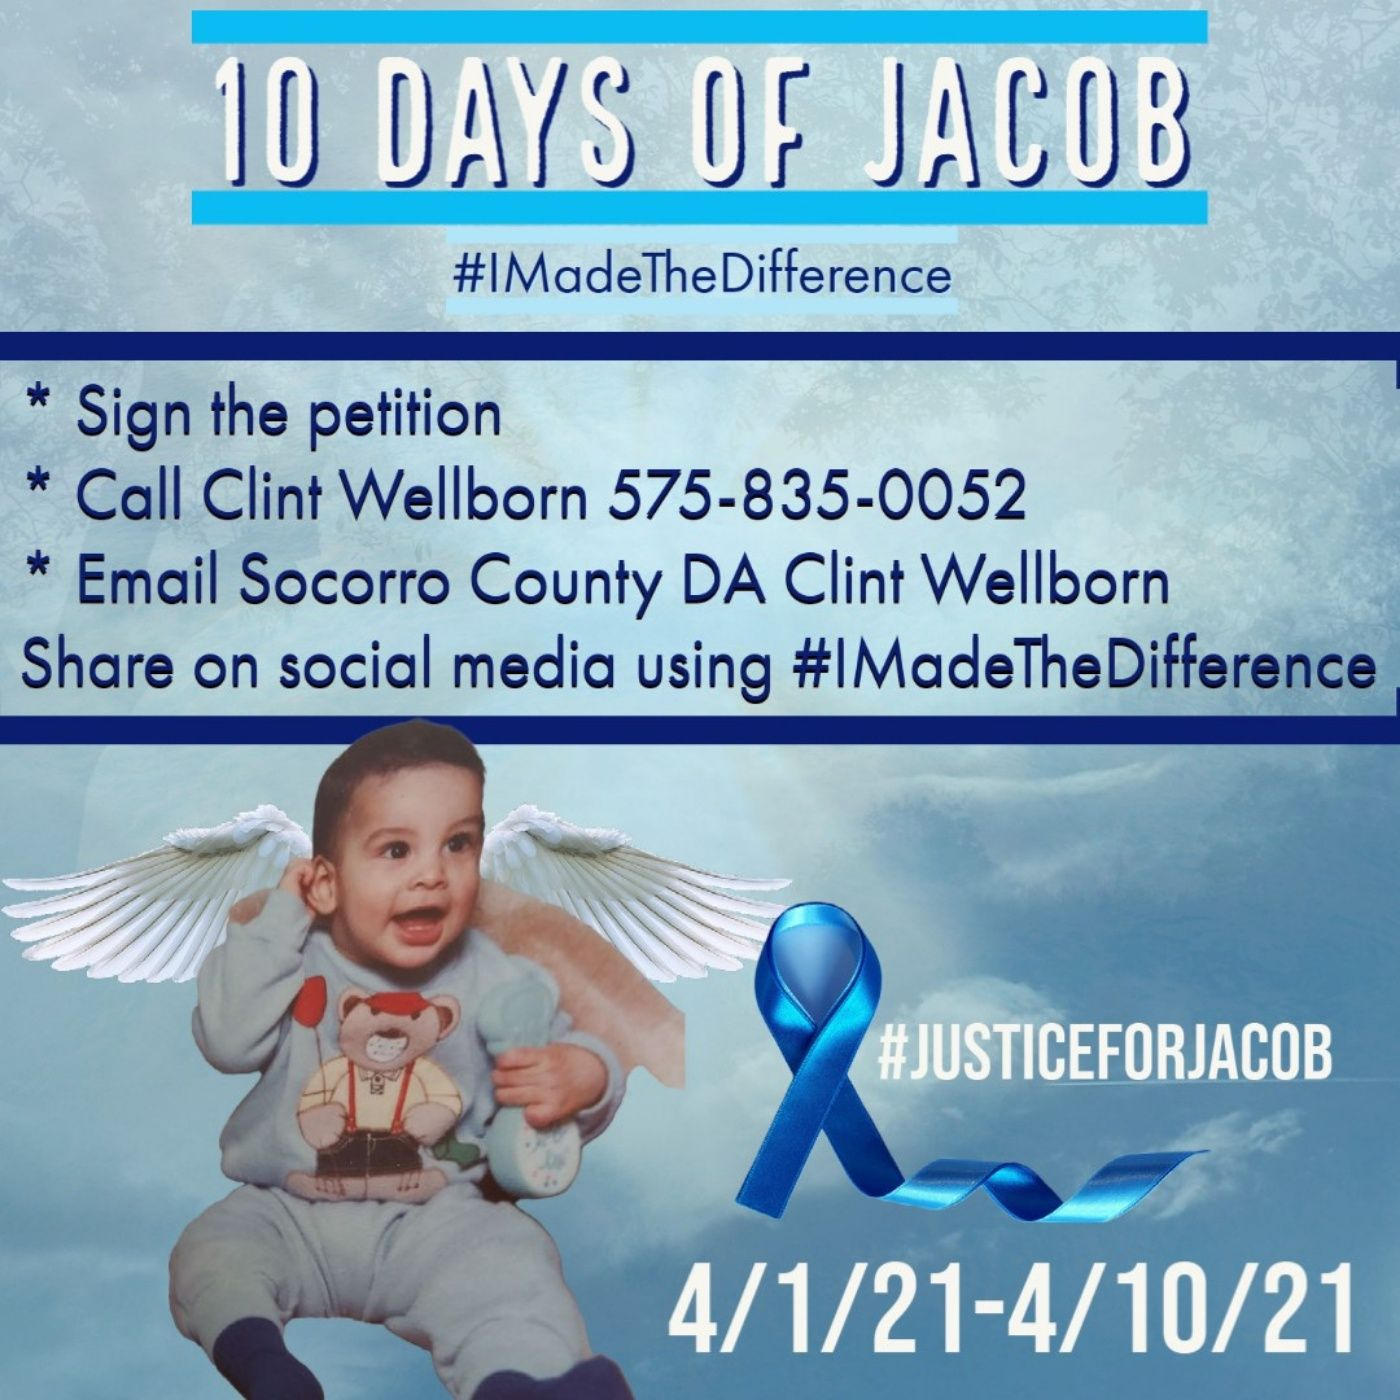 Justice for Jacob